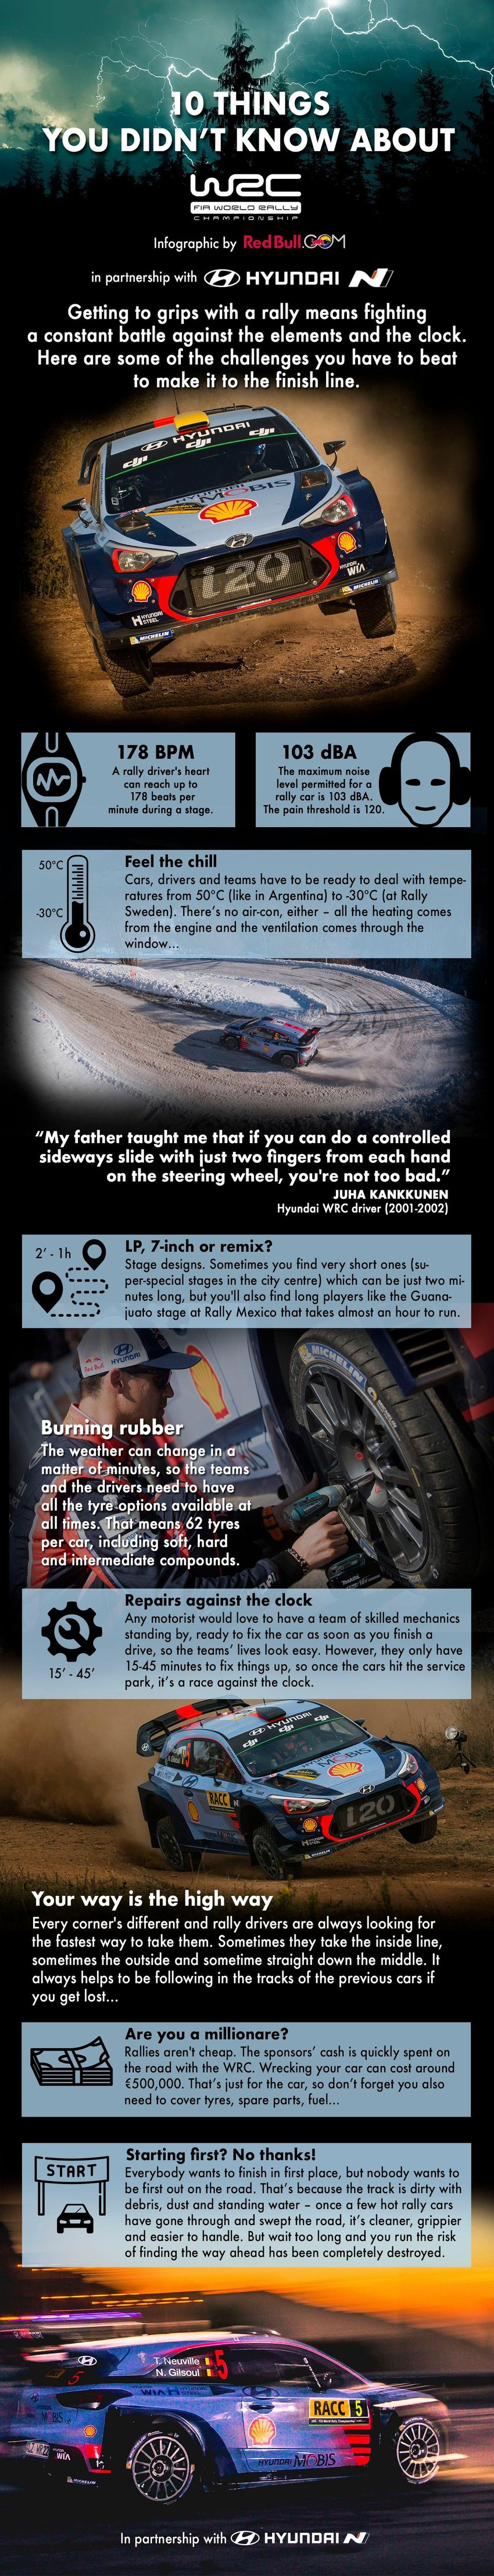 wrc 10 things you did not know